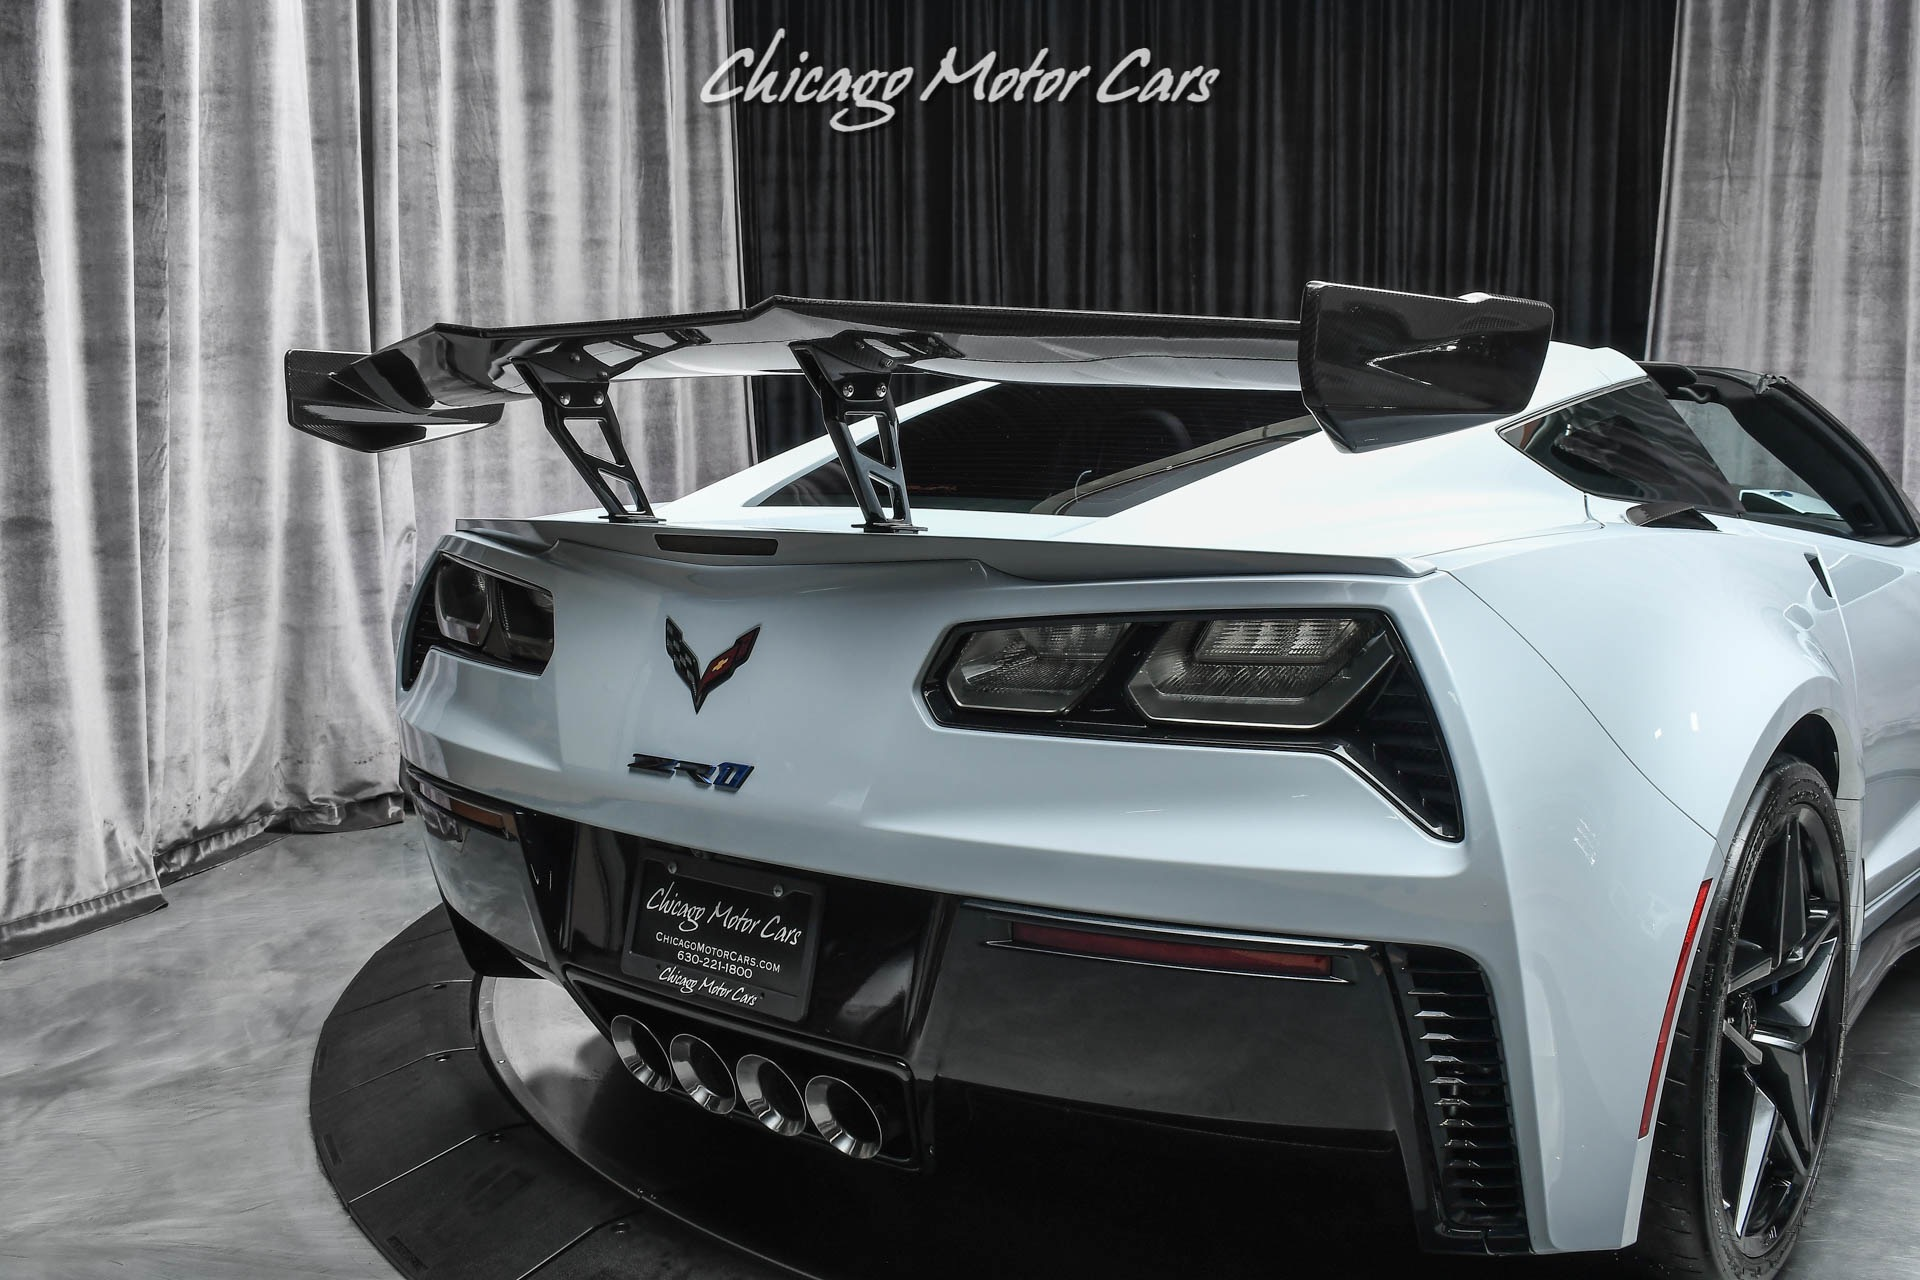 Used-2019-Chevrolet-Corvette-ZR1-3LZ-RARE-CERAMIC-GRAY-ZTK-PKG-COMP-SEATS